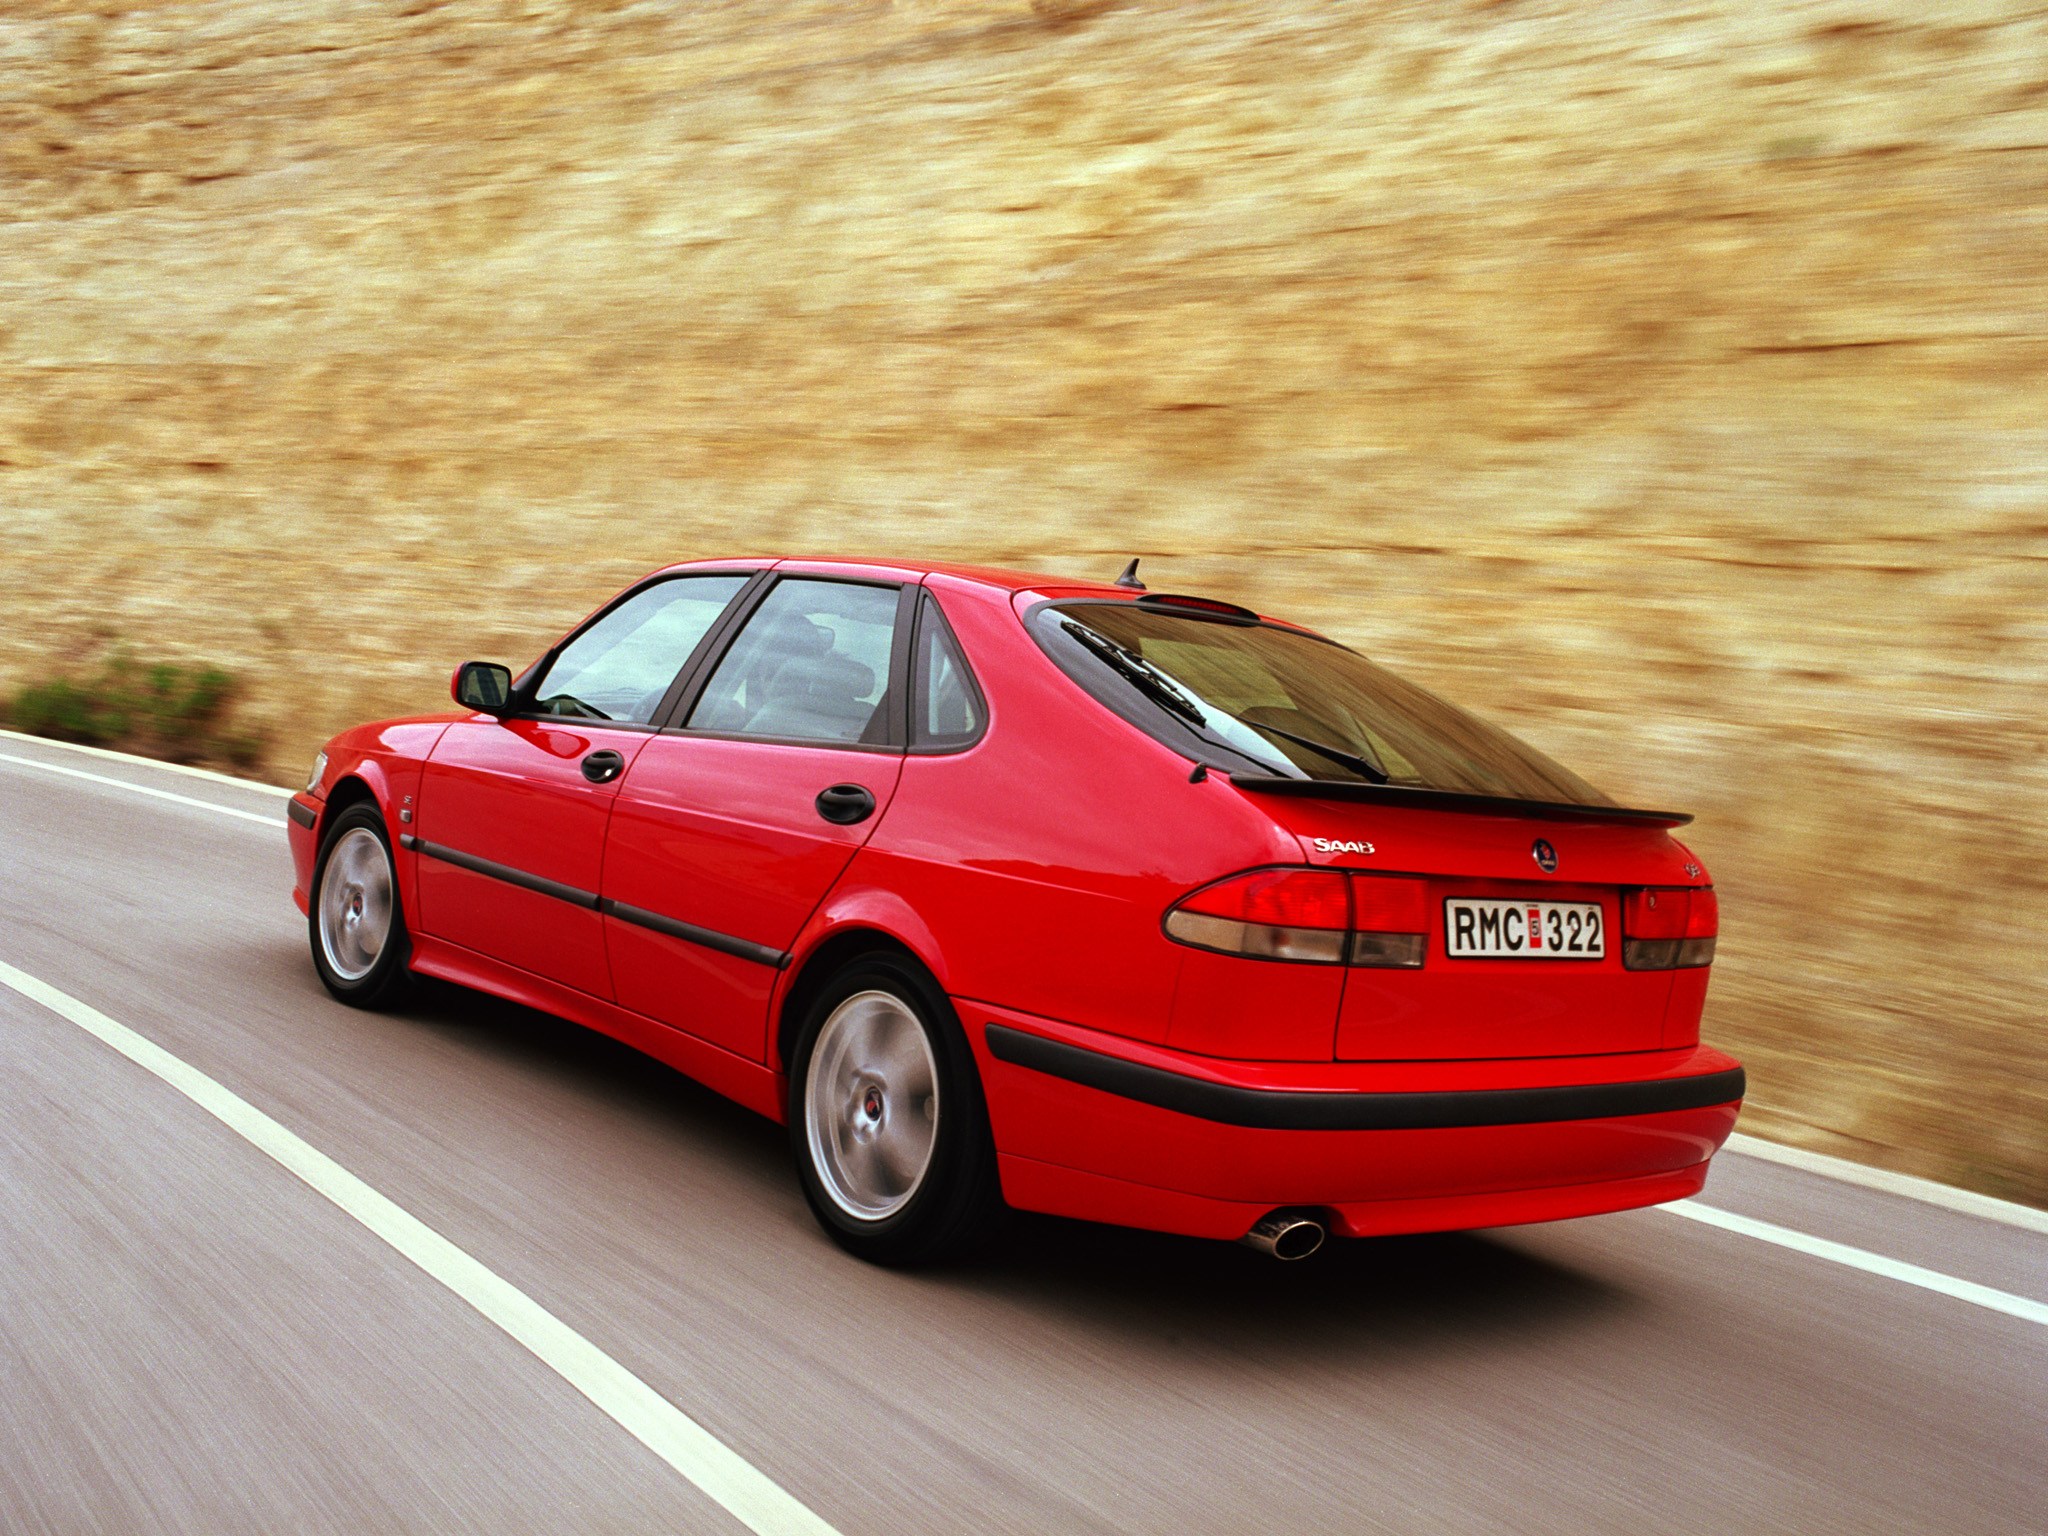 saab_9-3_youngtimer_aero_red